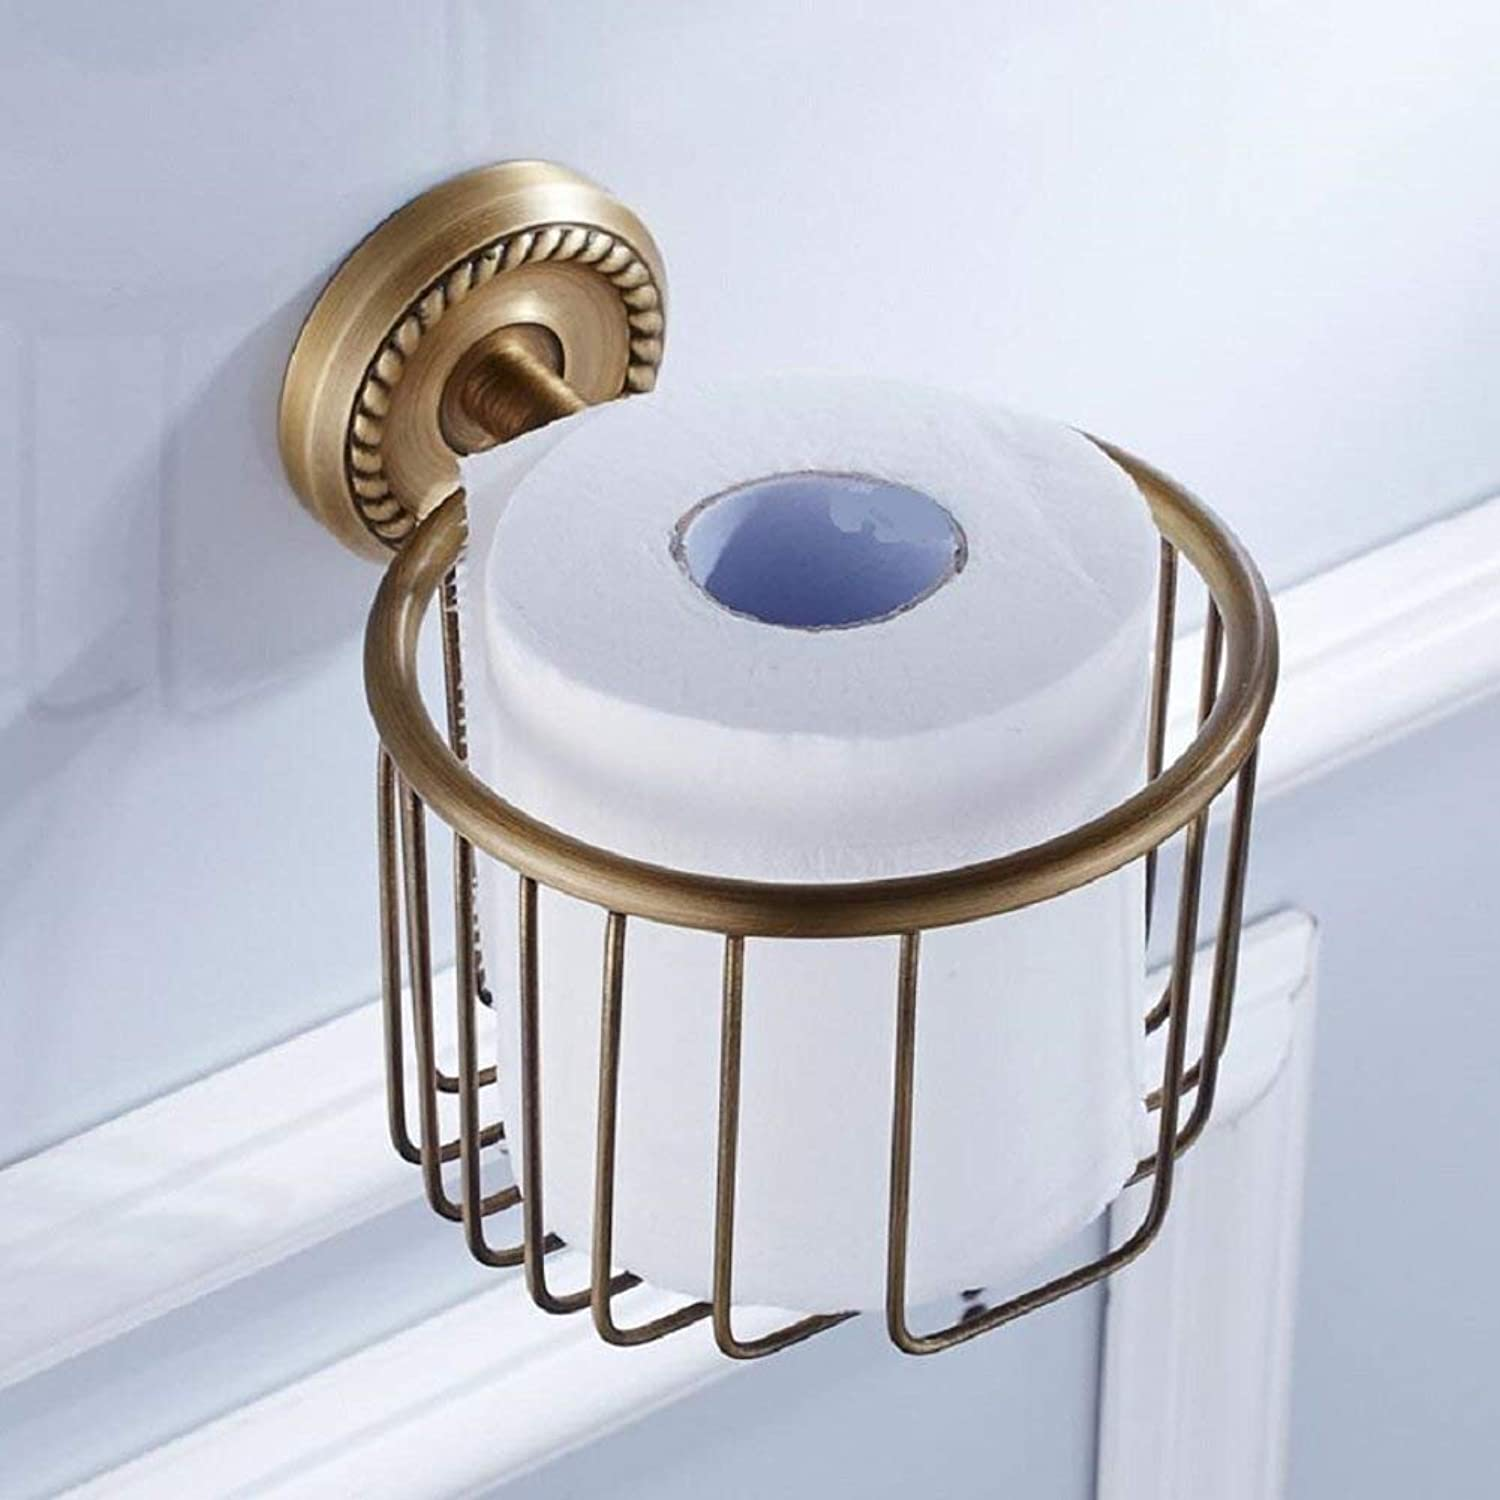 Paper Towels Retro Style in European cage, Robust and Bathroom Non-Rusty Shelves, a Easy Inssizetion and The Ecological Health of',Door Yellow Paper Copper